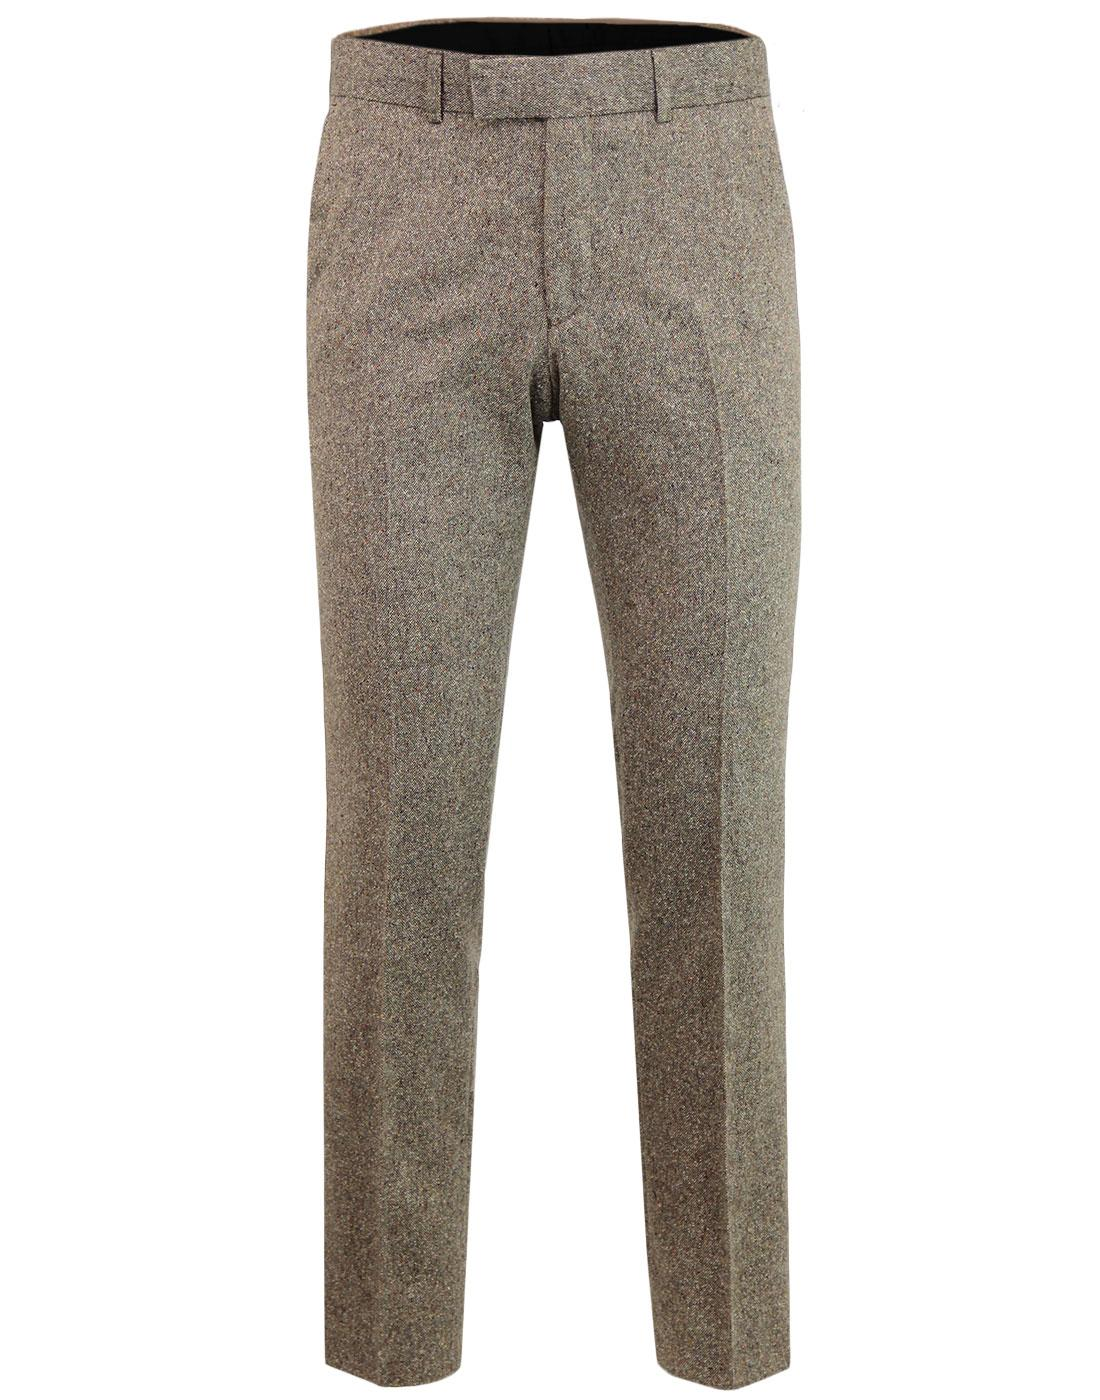 Retro Mod Donegal Fleck Slim Suit Trousers BISCUIT